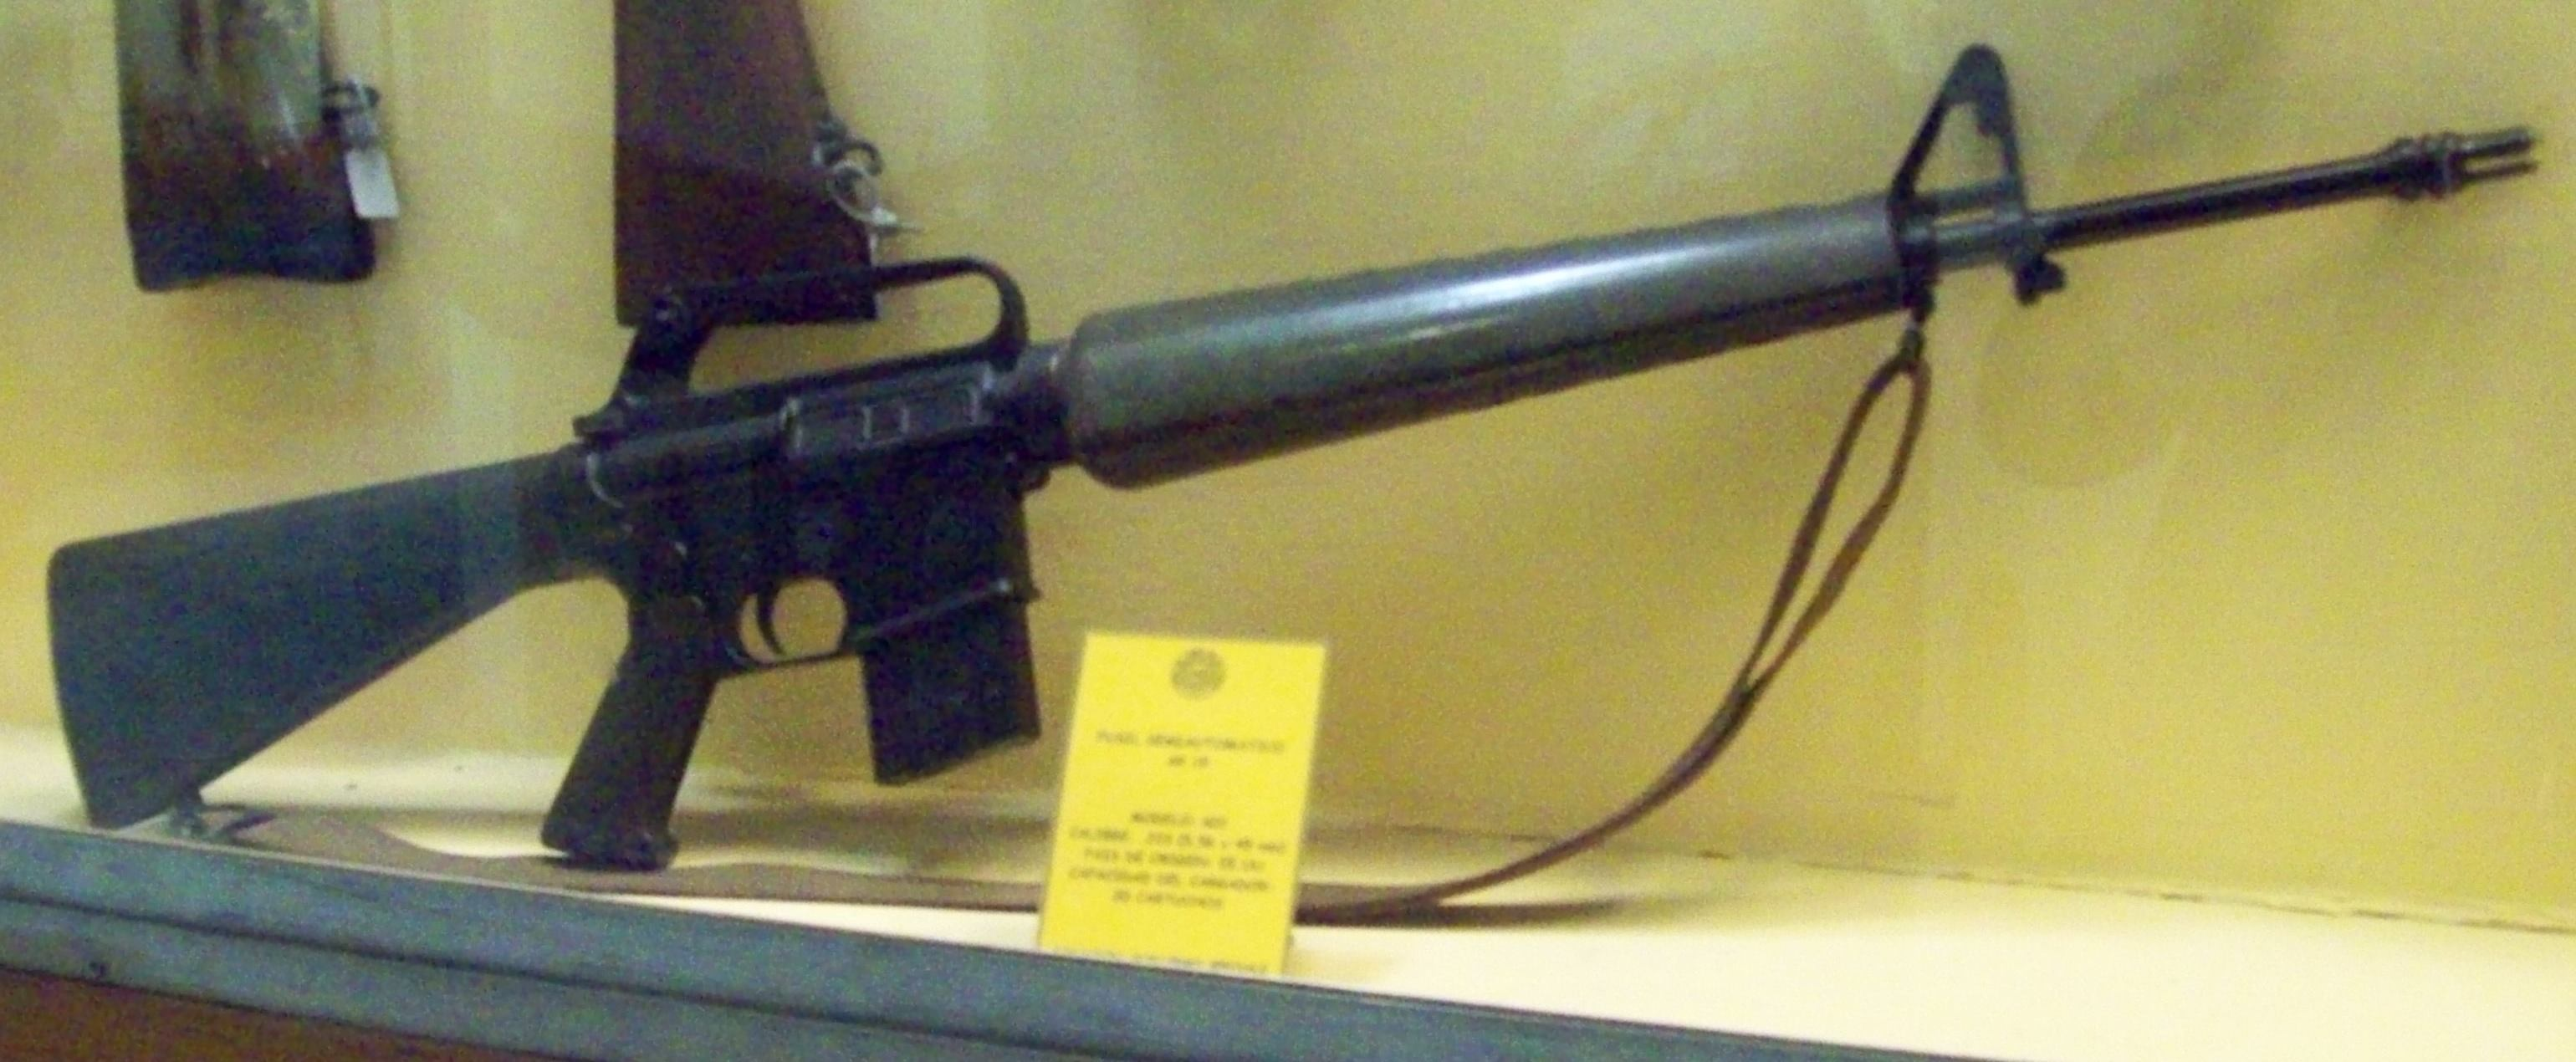 M16 rifle in 1964